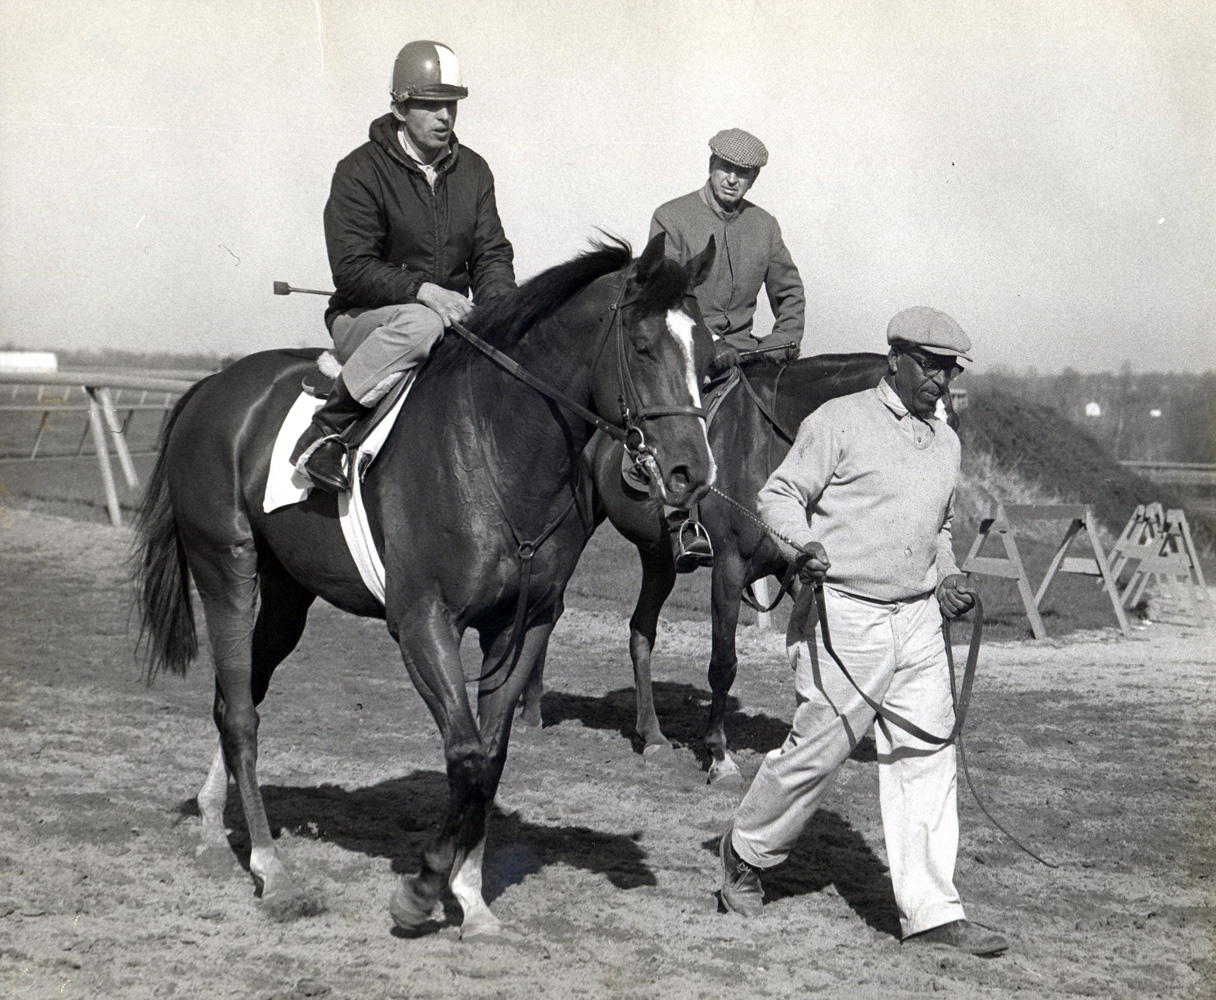 Horatio Luro (on horseback in background) joining Northern Dancer during training hours, April 1964 (Museum Collection)